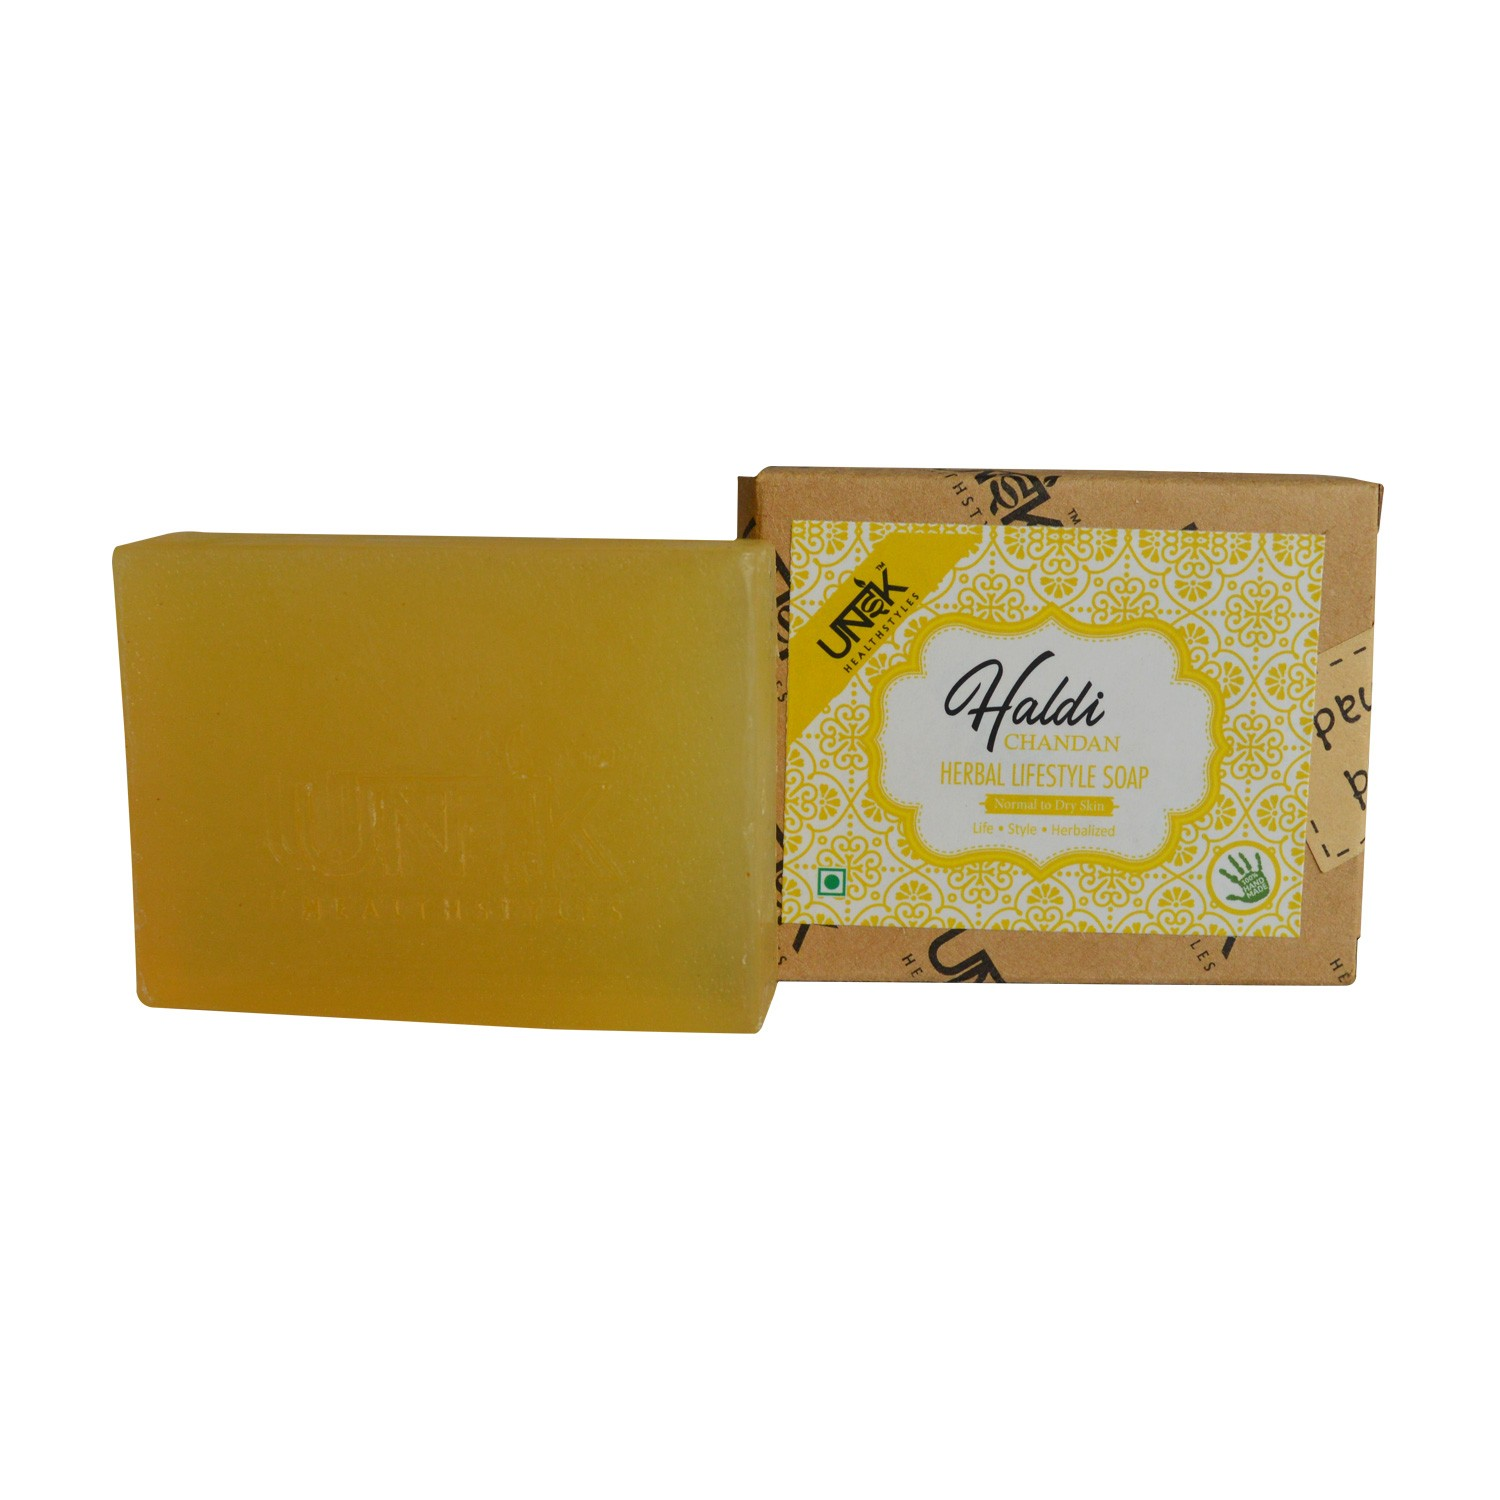 Handcrafted Haldi Chandan Soap | MRP: Rs.99